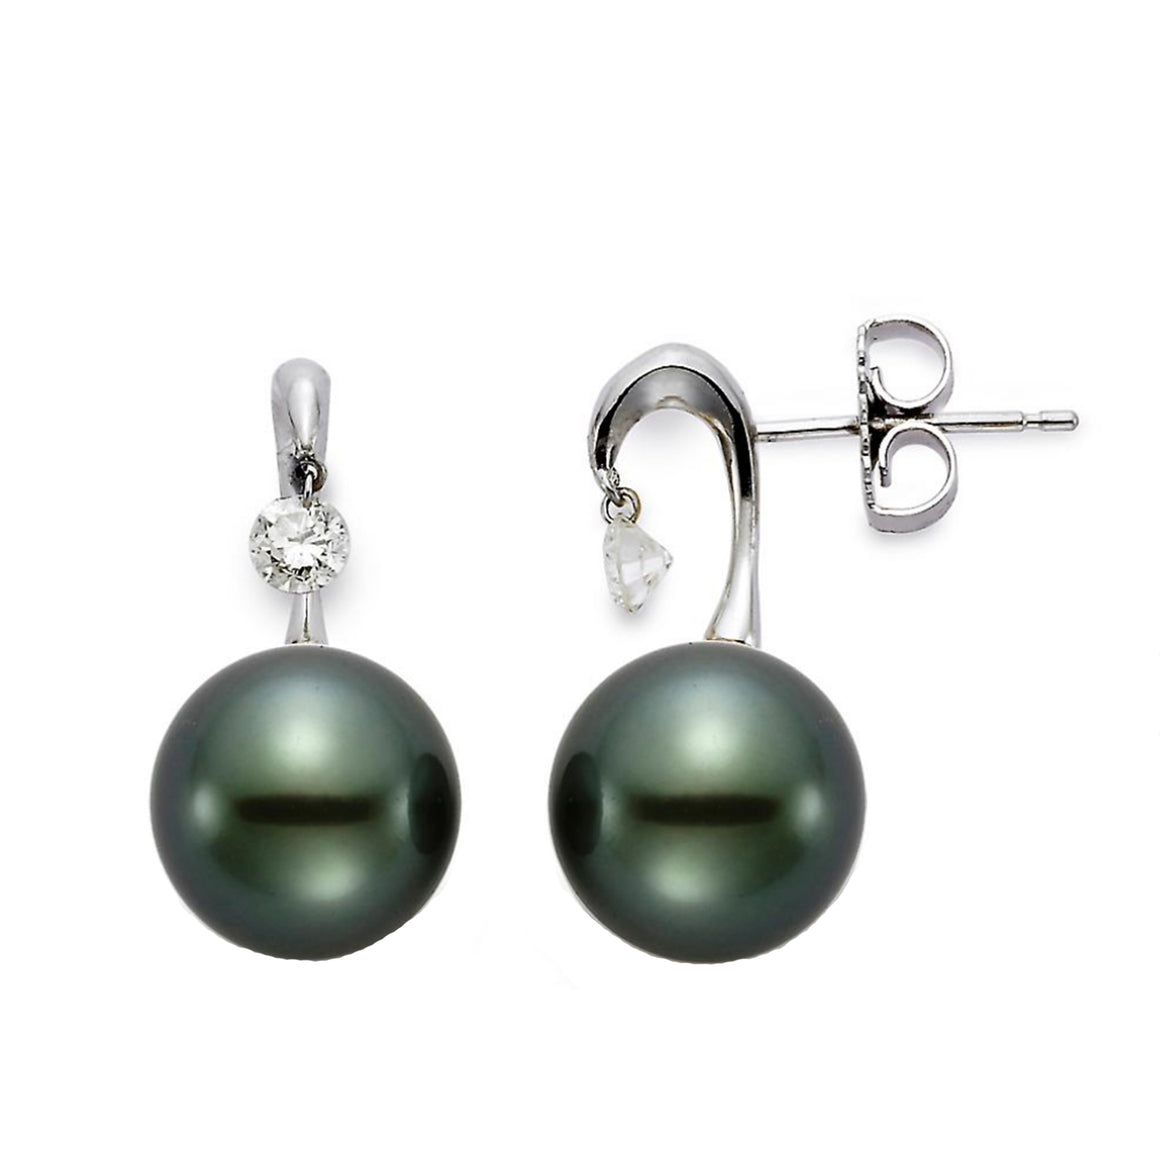 Tahitian Pearl and Drilled Diamond Earrings by Mastoloni - Talisman Collection